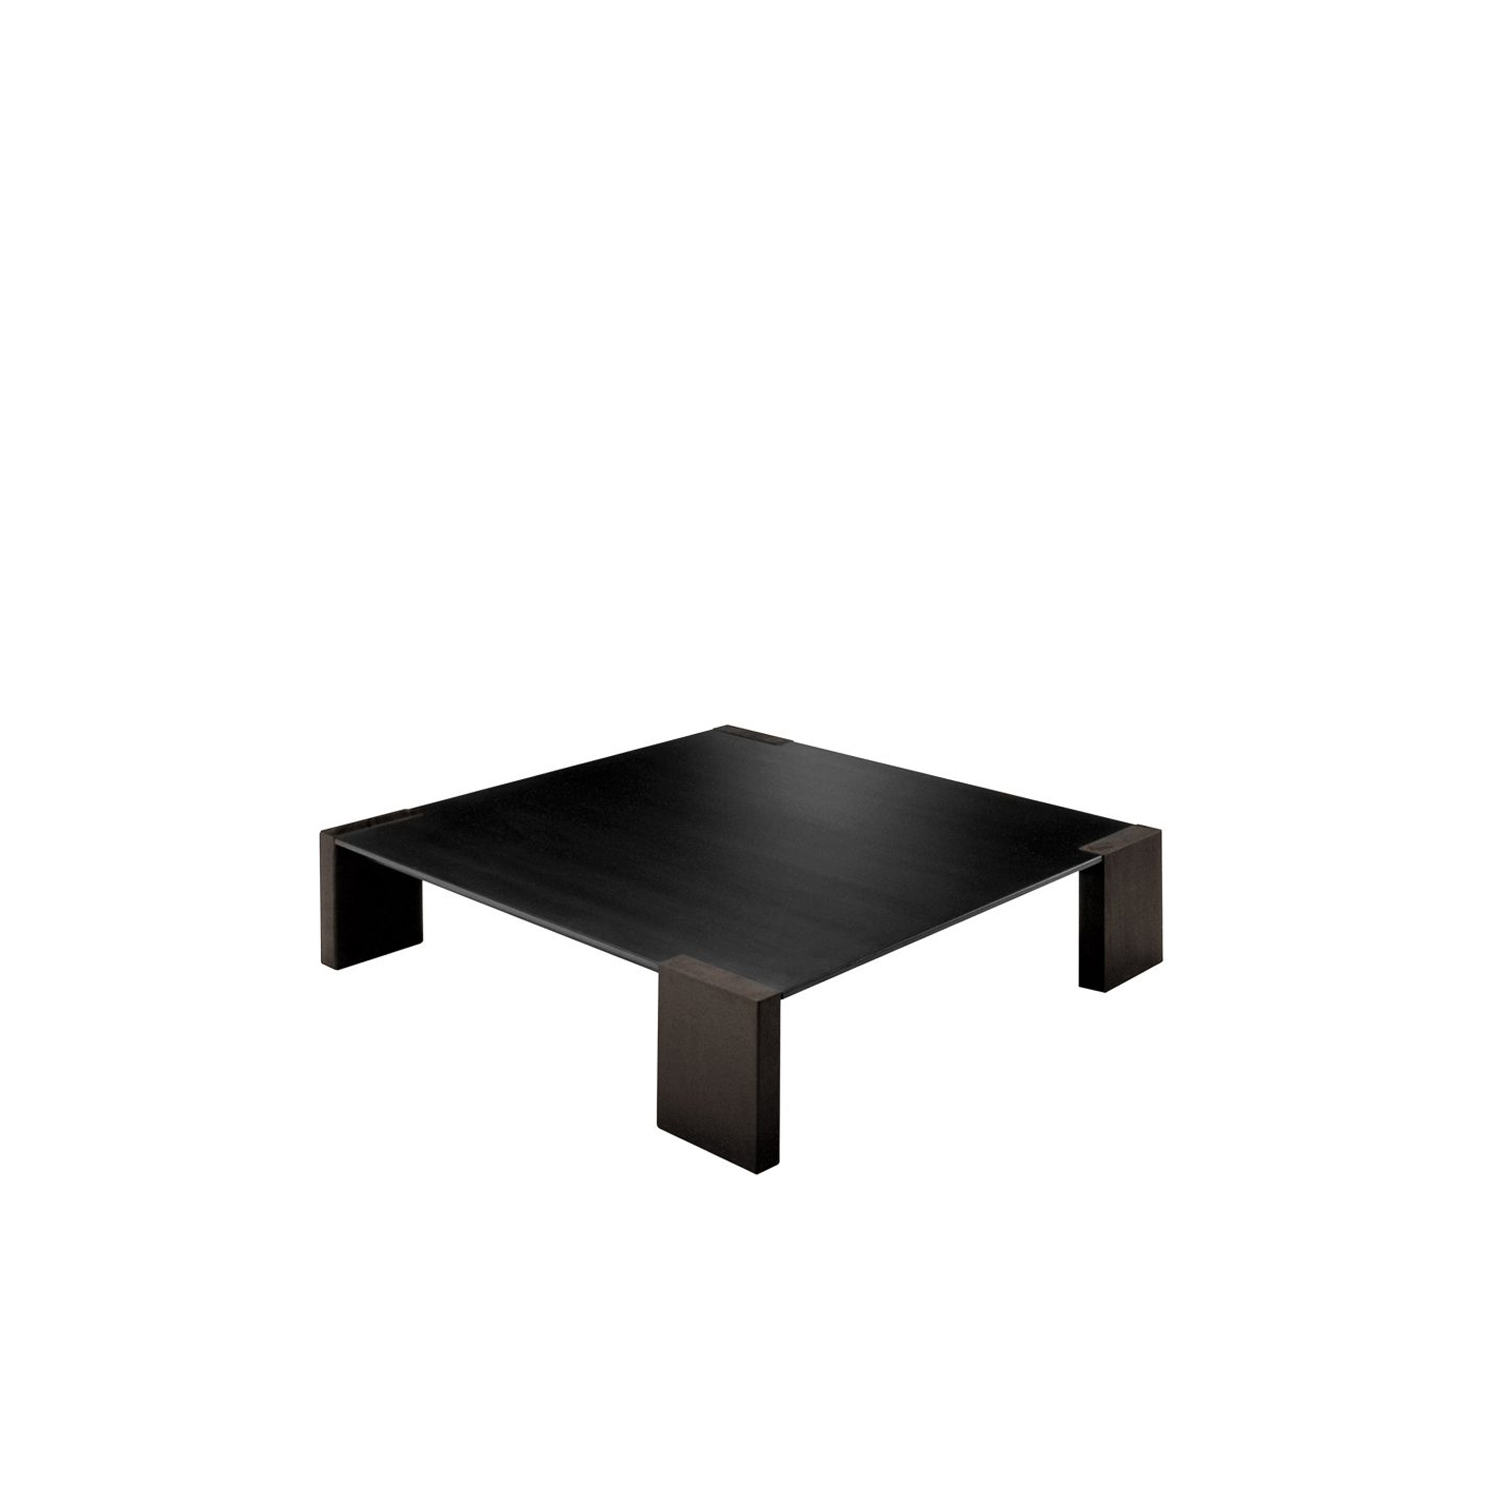 Ironwood Coffee Table - The Ironwood Coffee Table comes in two sizes and it perfect when placed in a living room or in a communal space. The top is in natural sheet steel with a black phosphatized finish finalised with bee' wax.